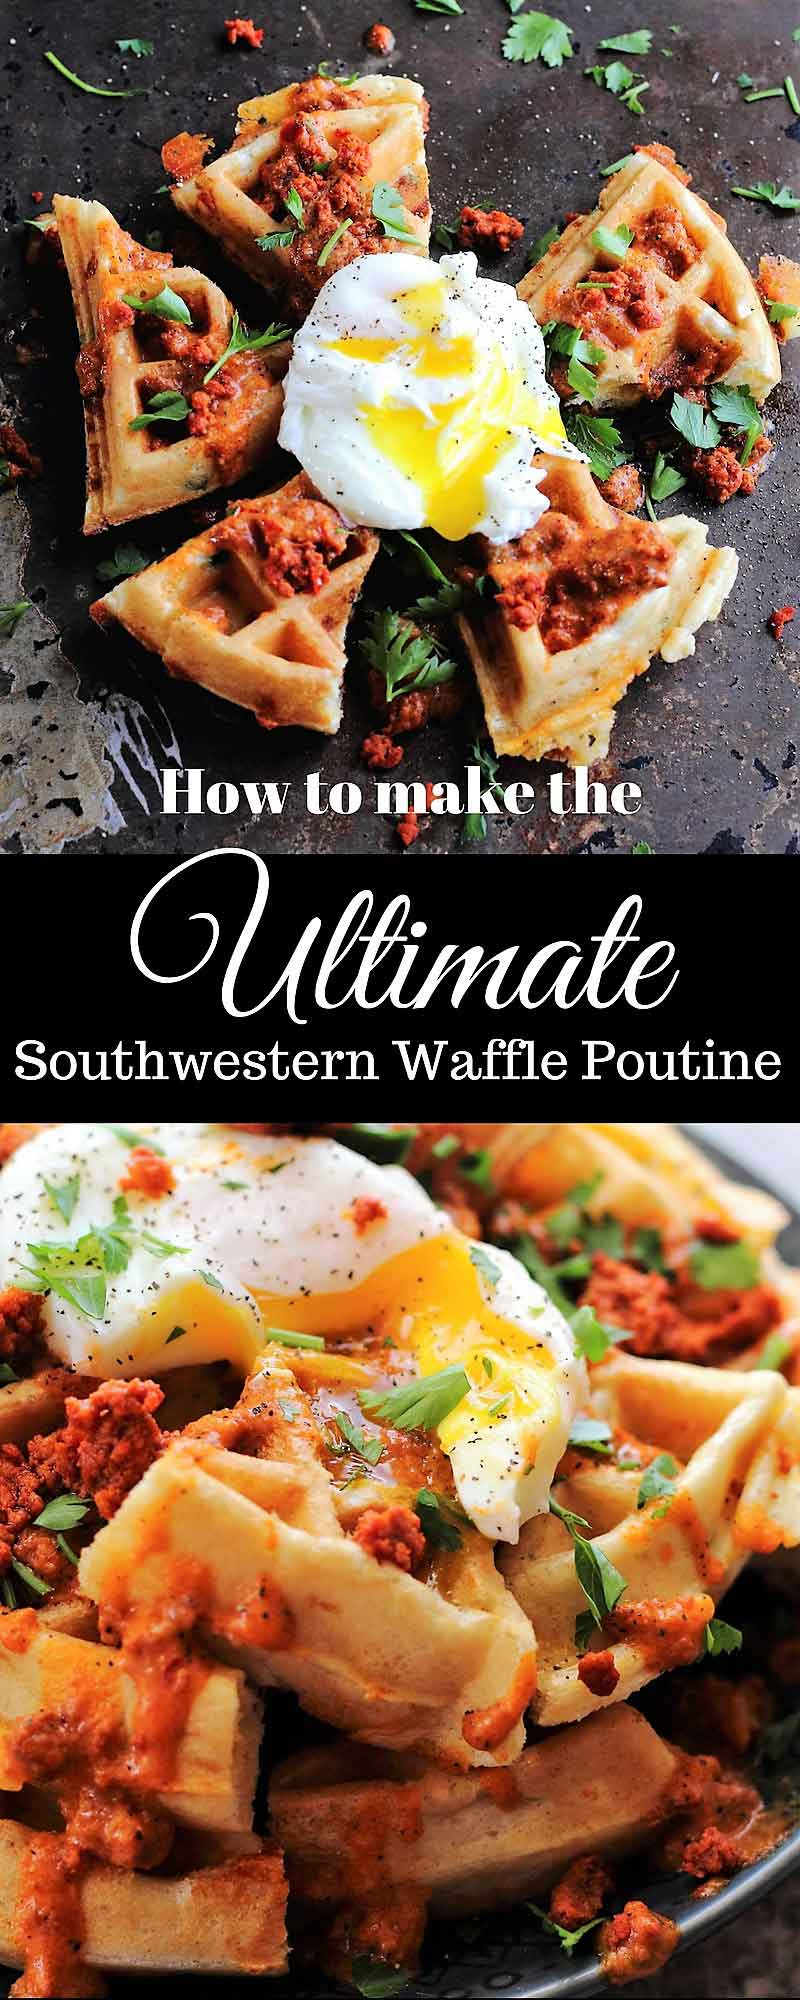 Fully loaded southwestern waffle poutine for national waffle day jalapeno cheddar chorizo egg parsley